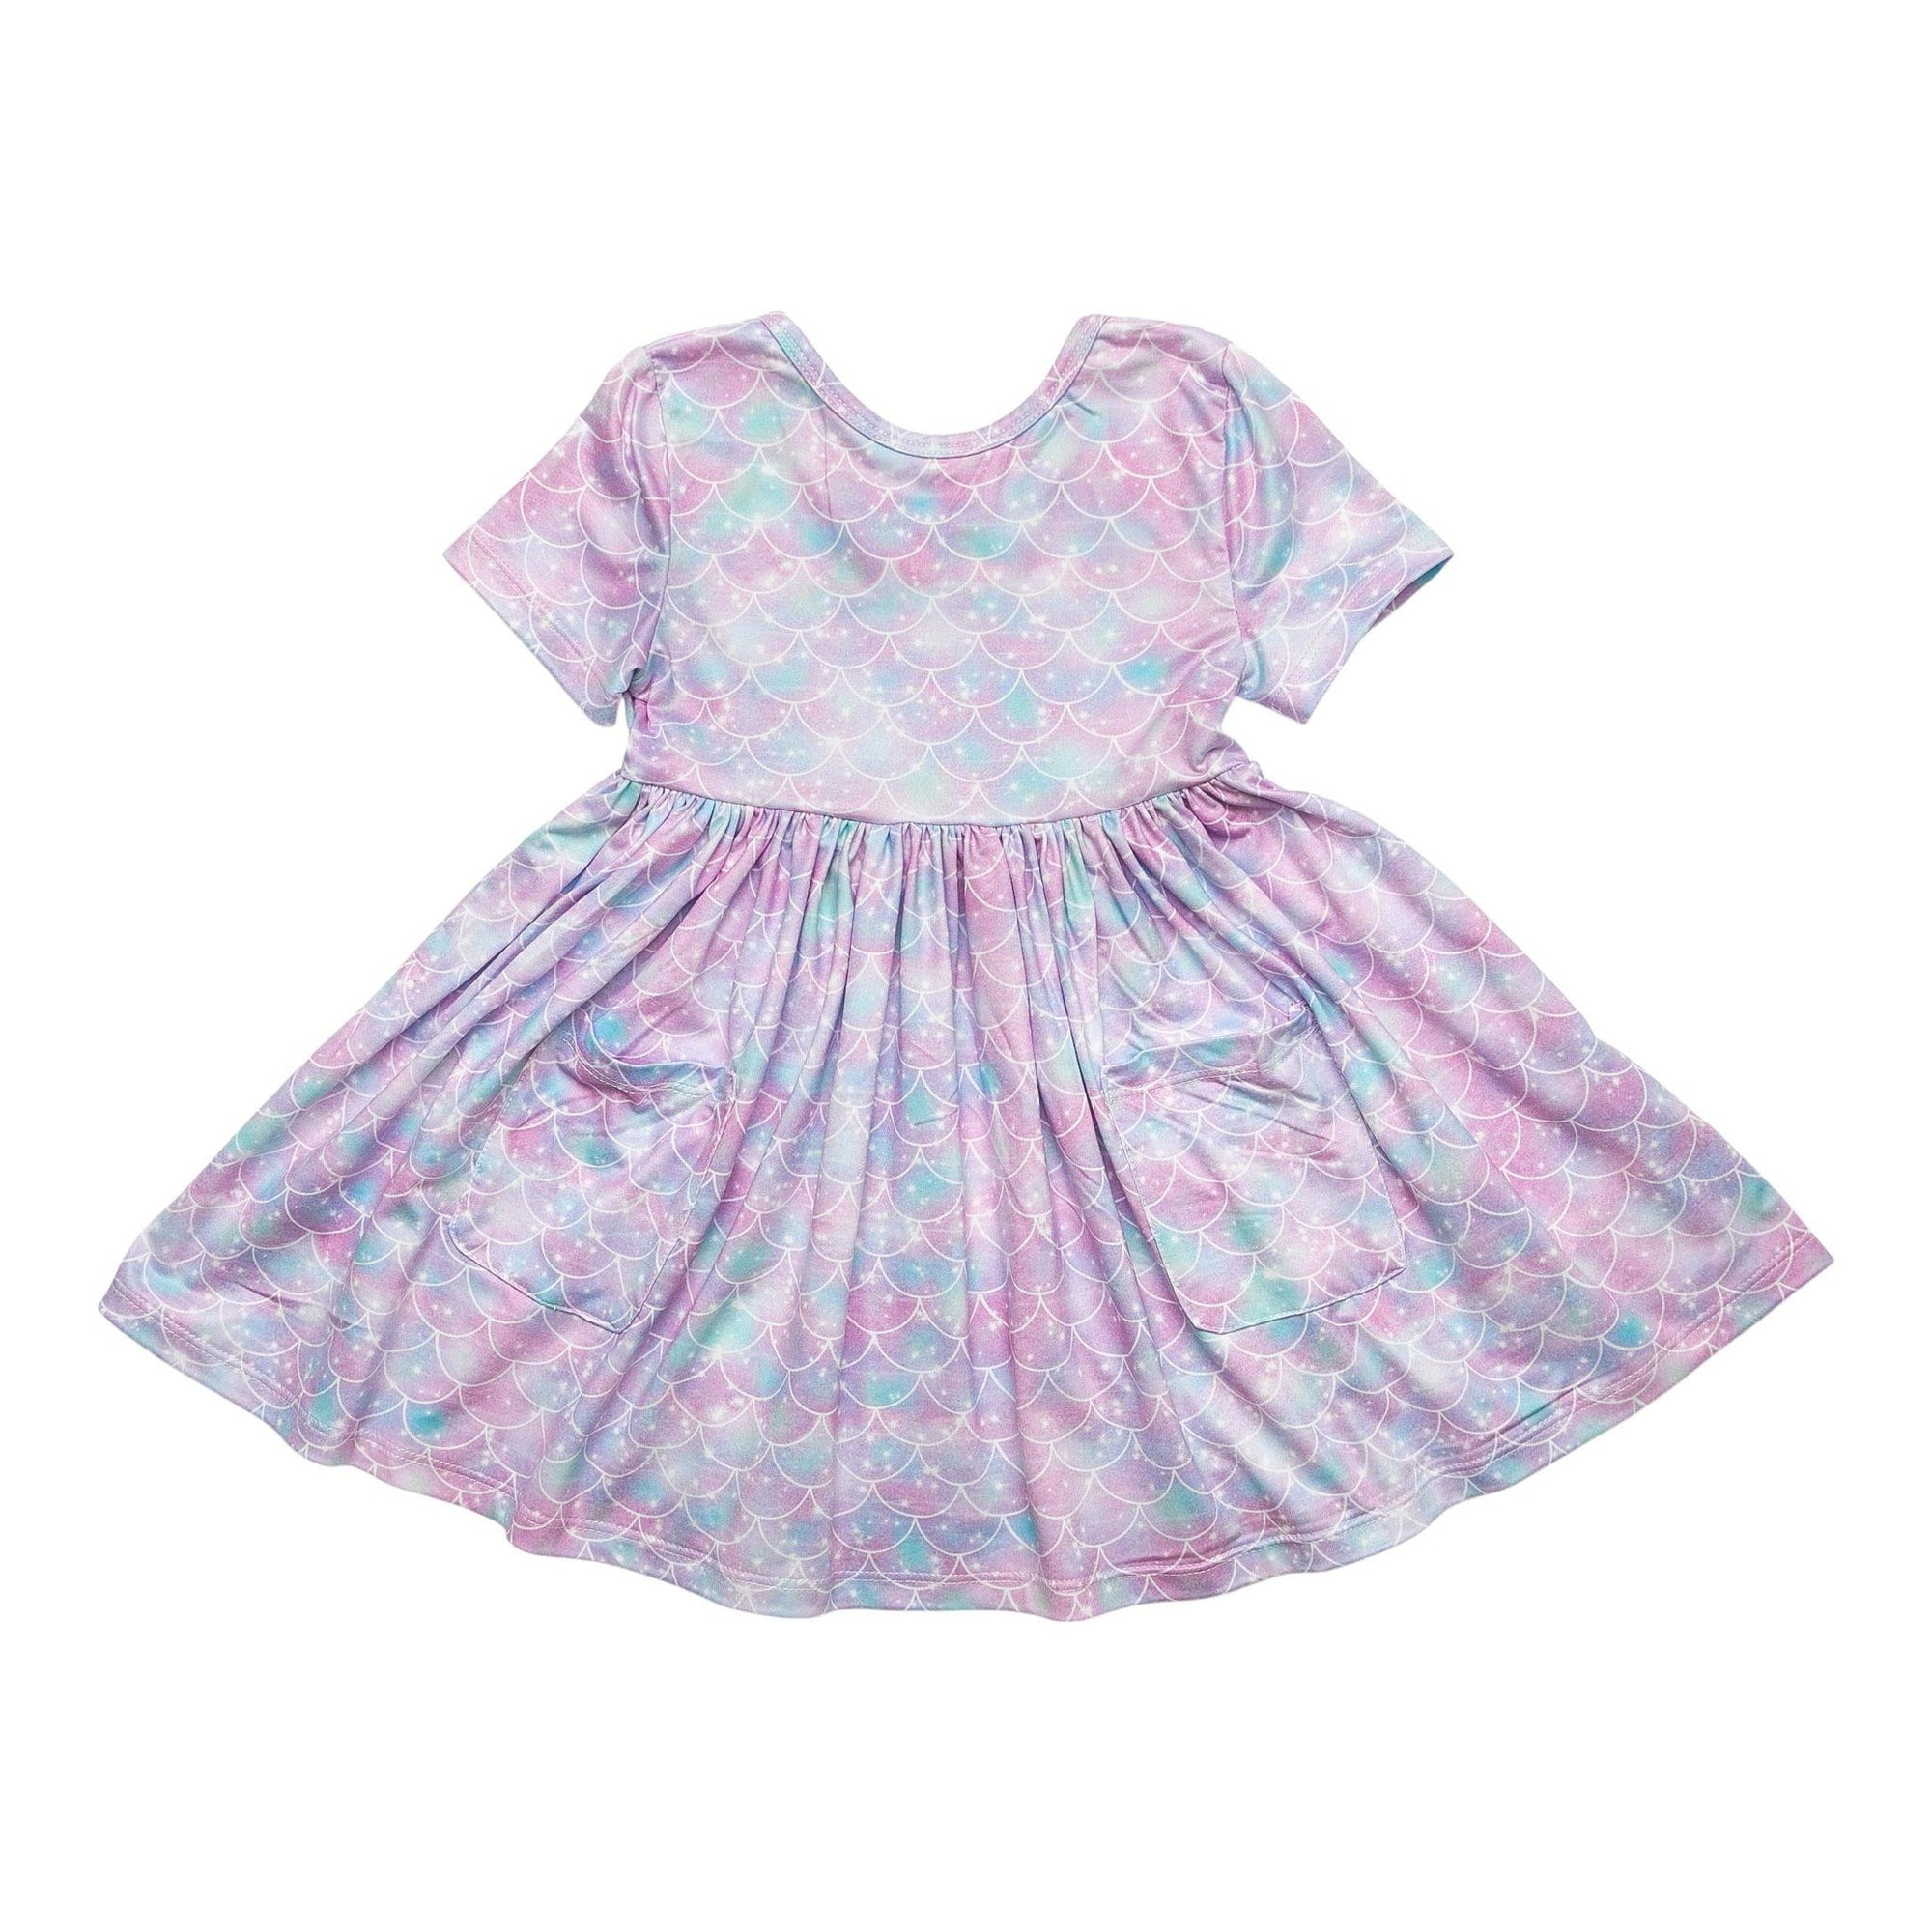 Mermaid Sparkles Short Sleeve Pocket Twirl Dress-Mila & Rose ®